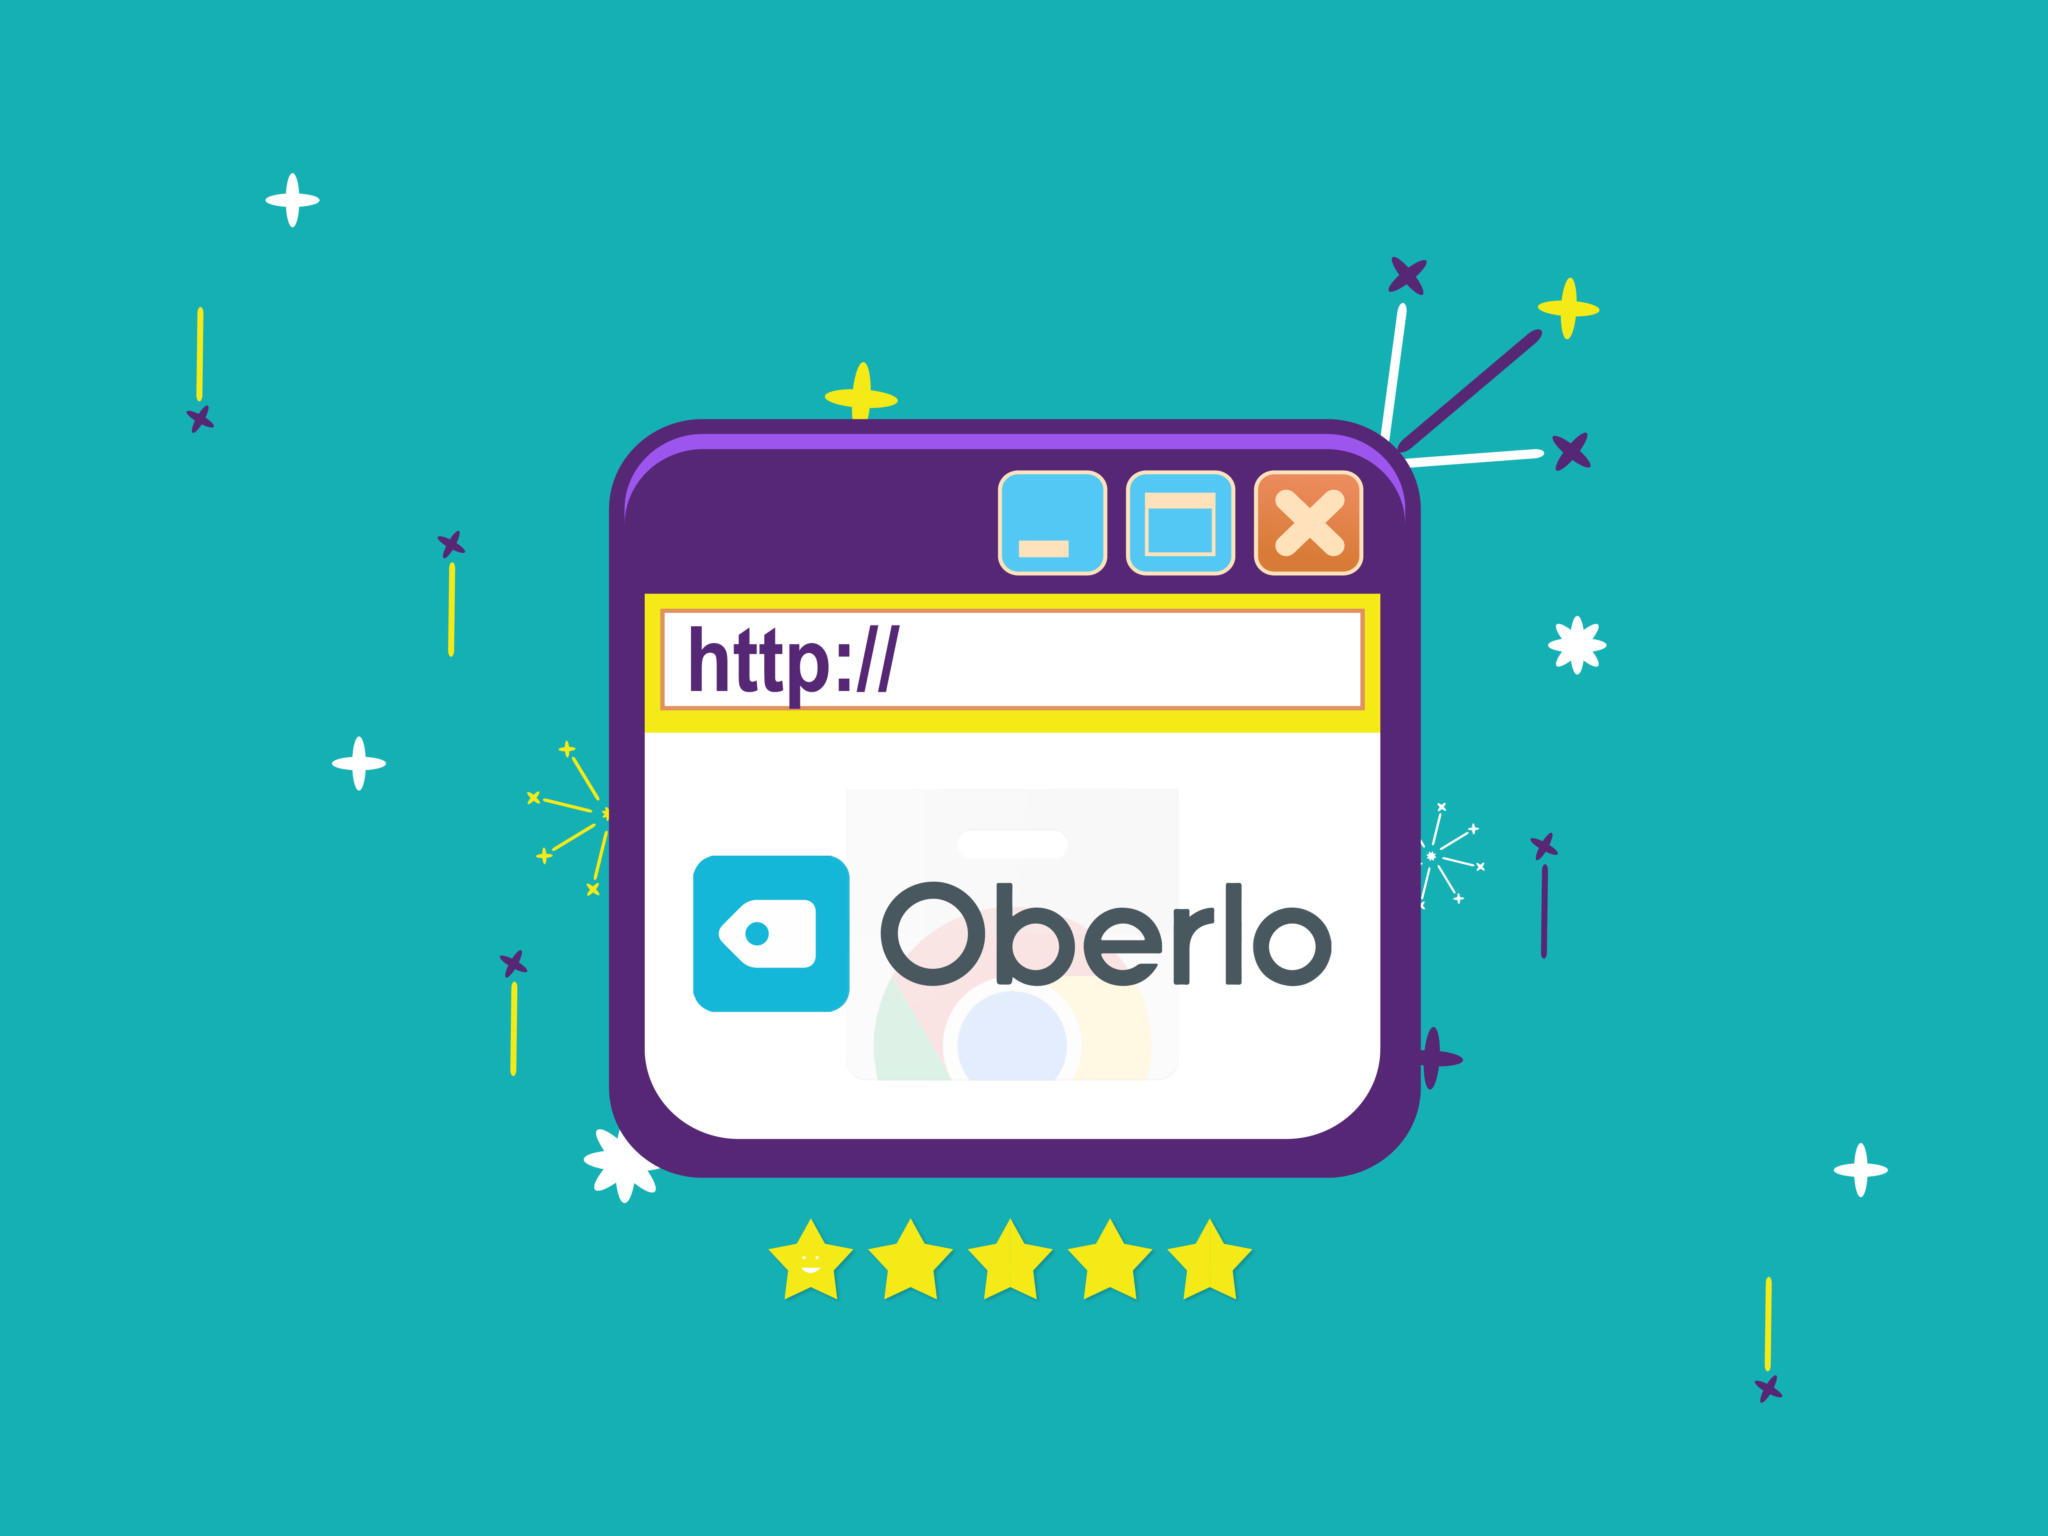 Oberlo Review: Pros and Cons Of The Best Dropshipping App